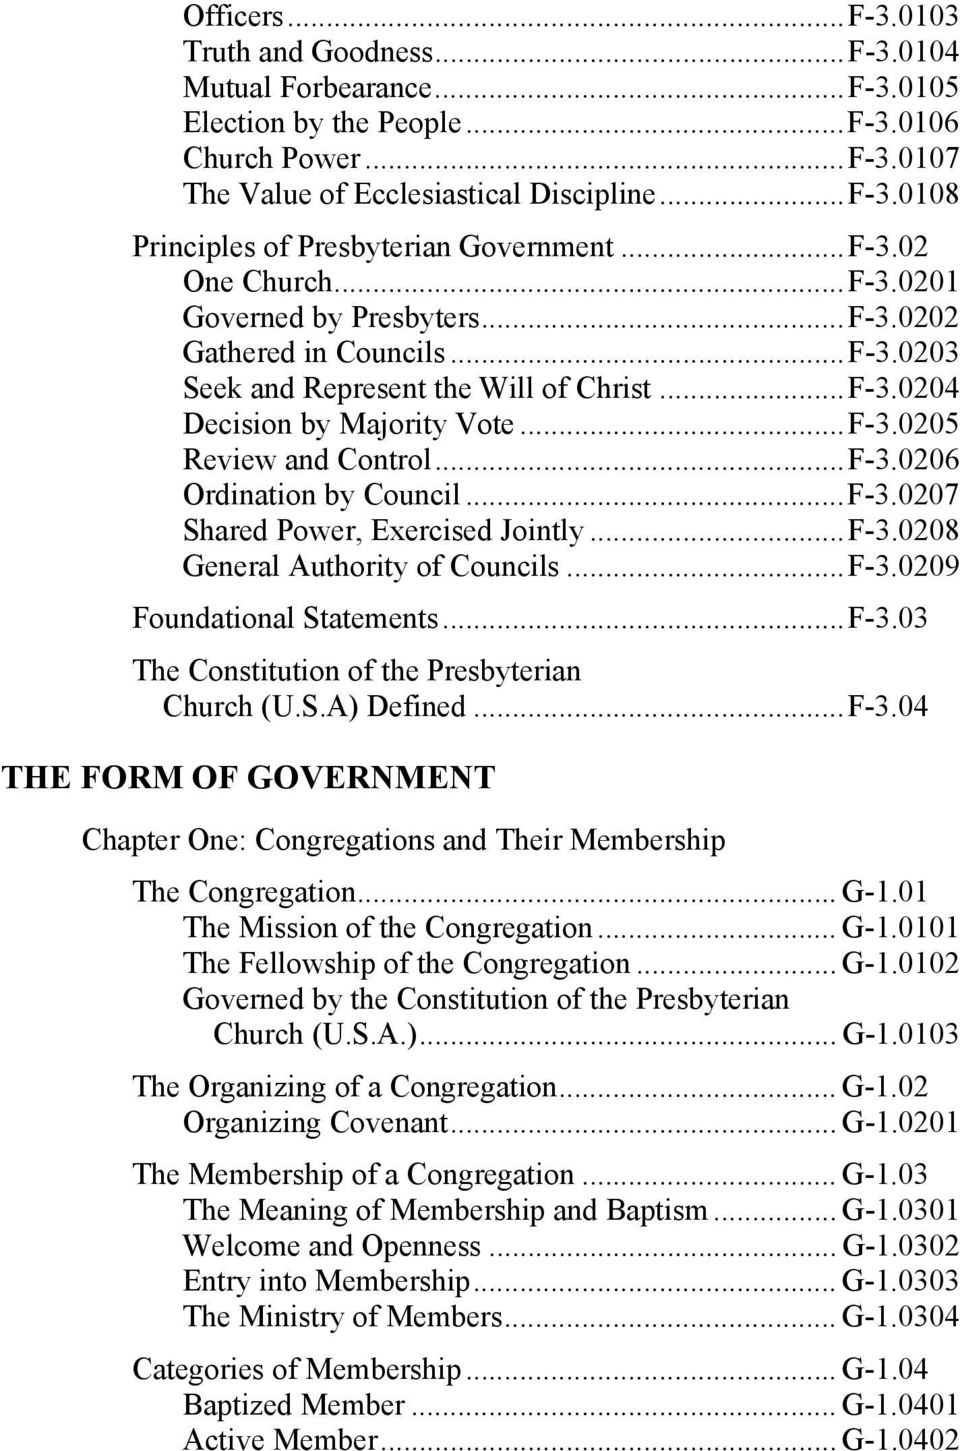 .. F-3.0206 Ordination by Council... F-3.0207 Shared Power, Exercised Jointly... F-3.0208 General Authority of Councils... F-3.0209 Foundational Statements... F-3.03 The Constitution of the Presbyterian Church (U.